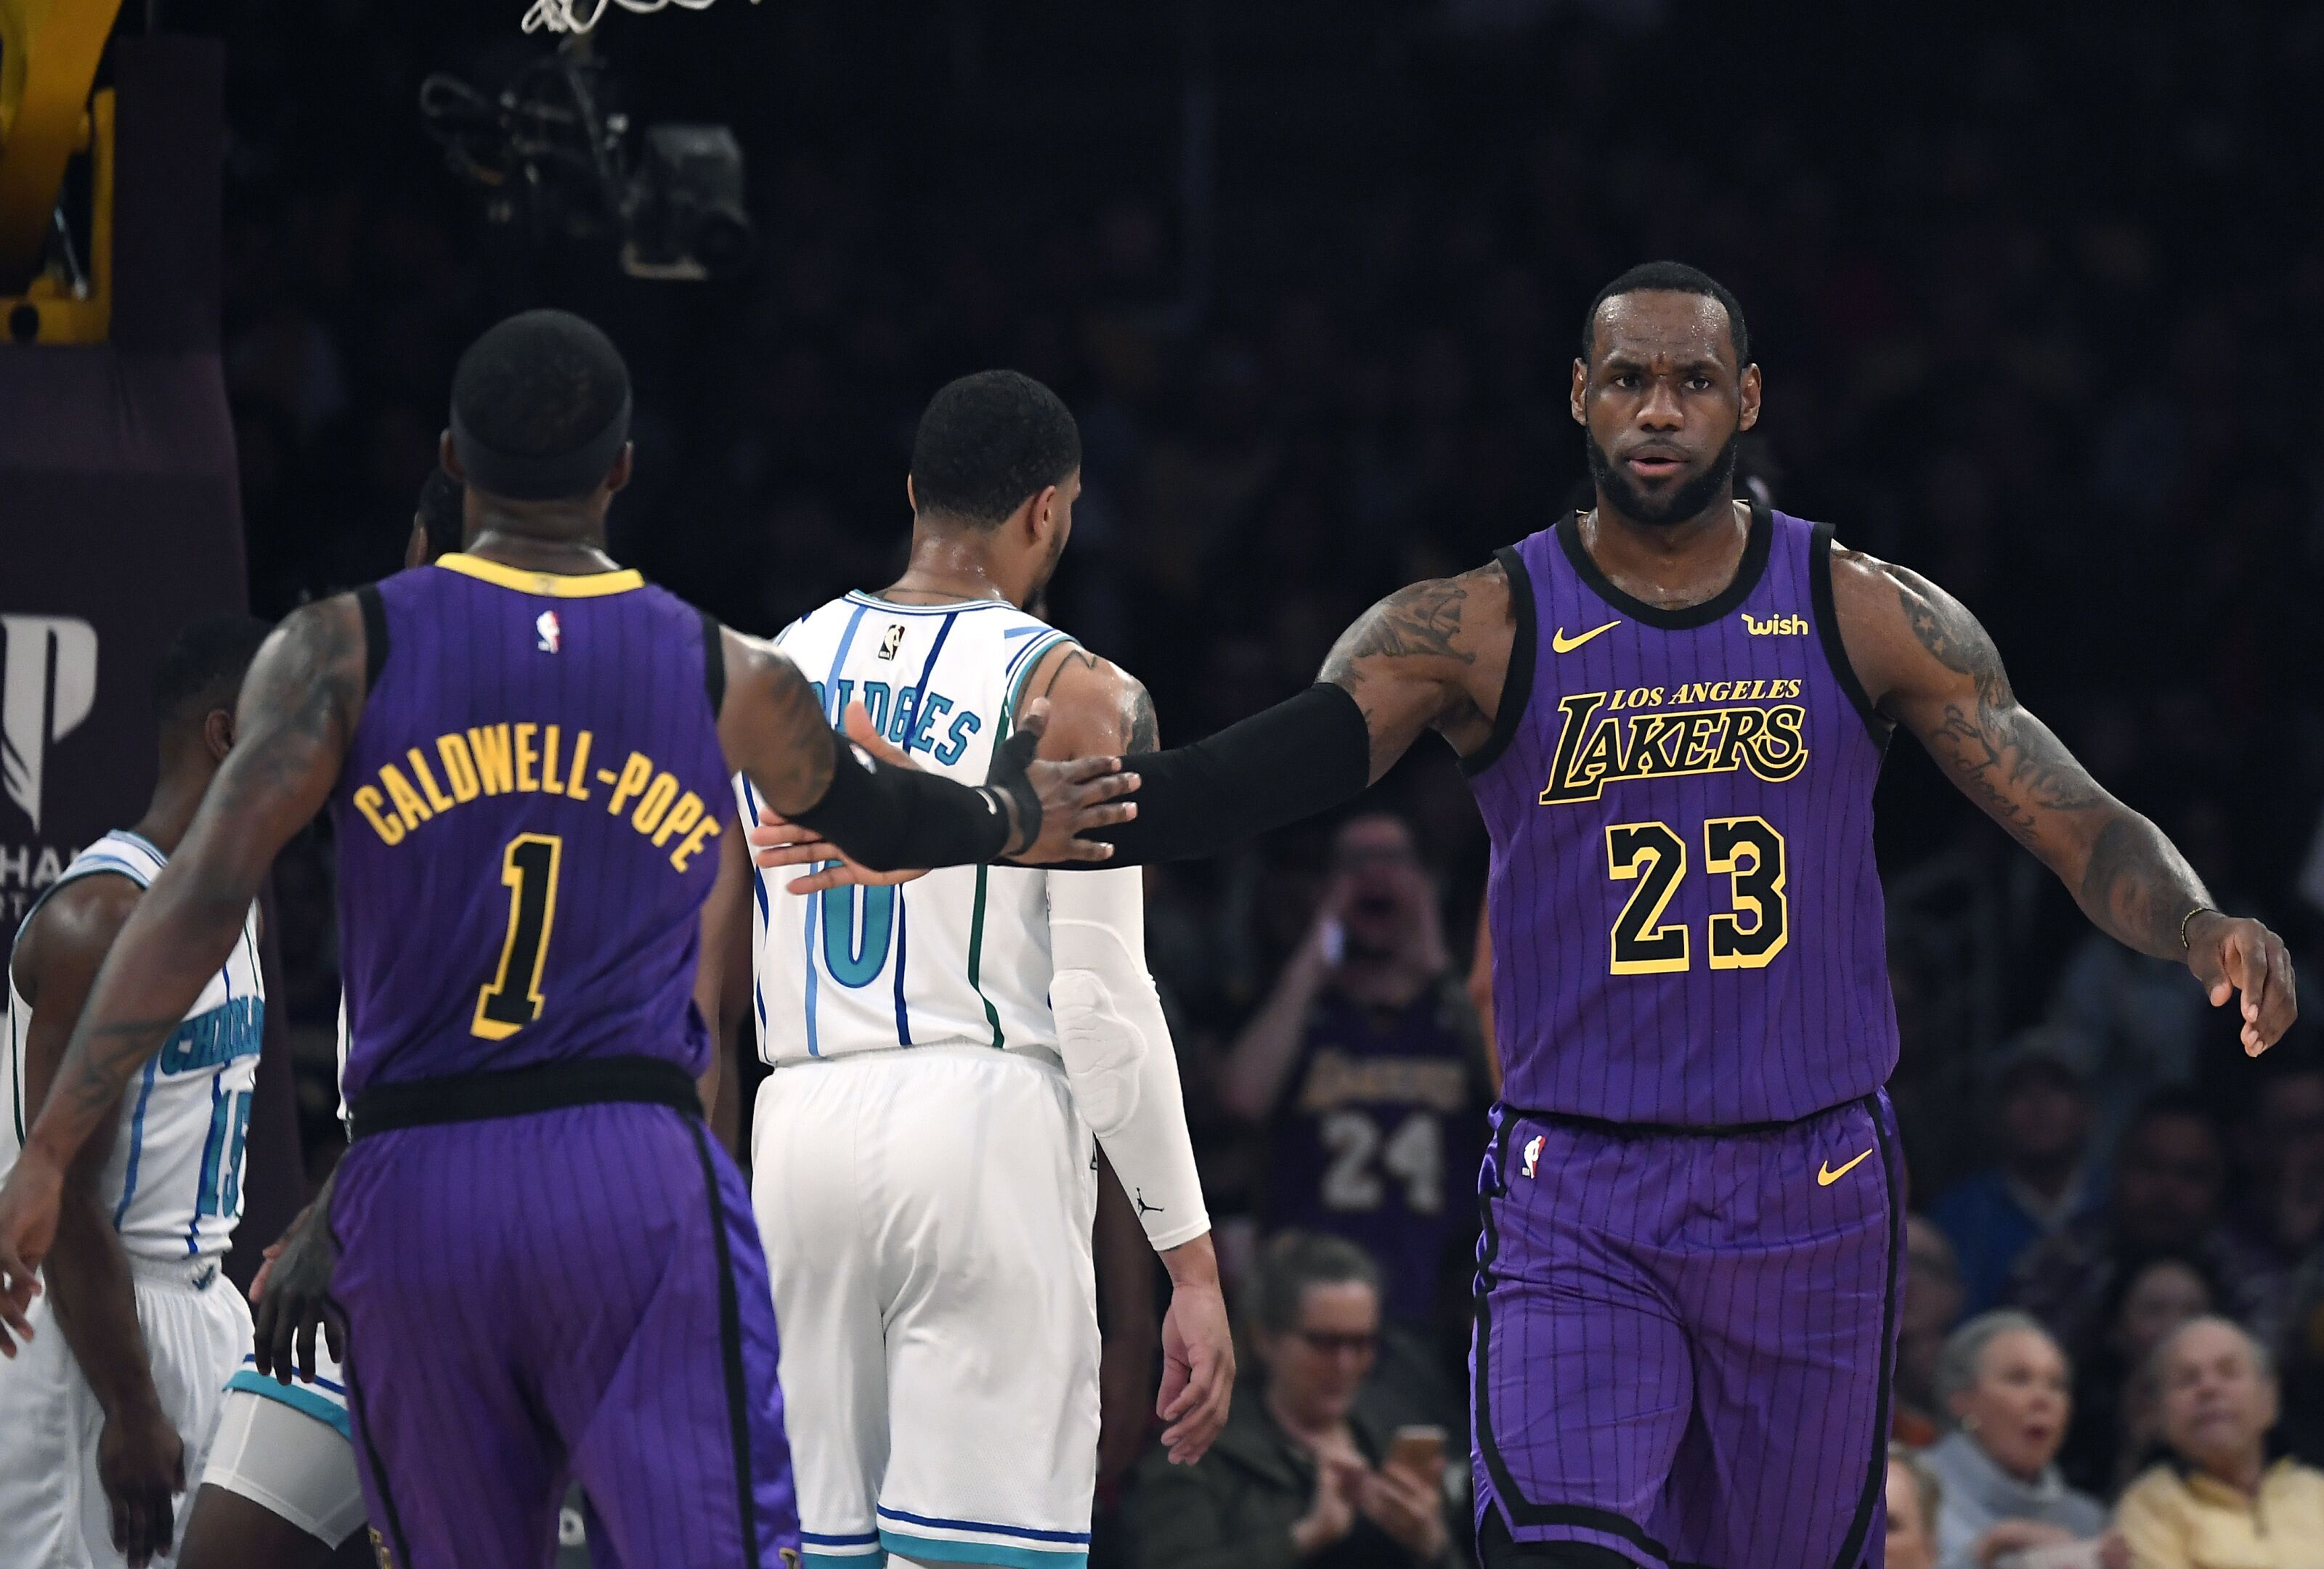 Los Angeles Lakers projected to make big jump in 2019-20